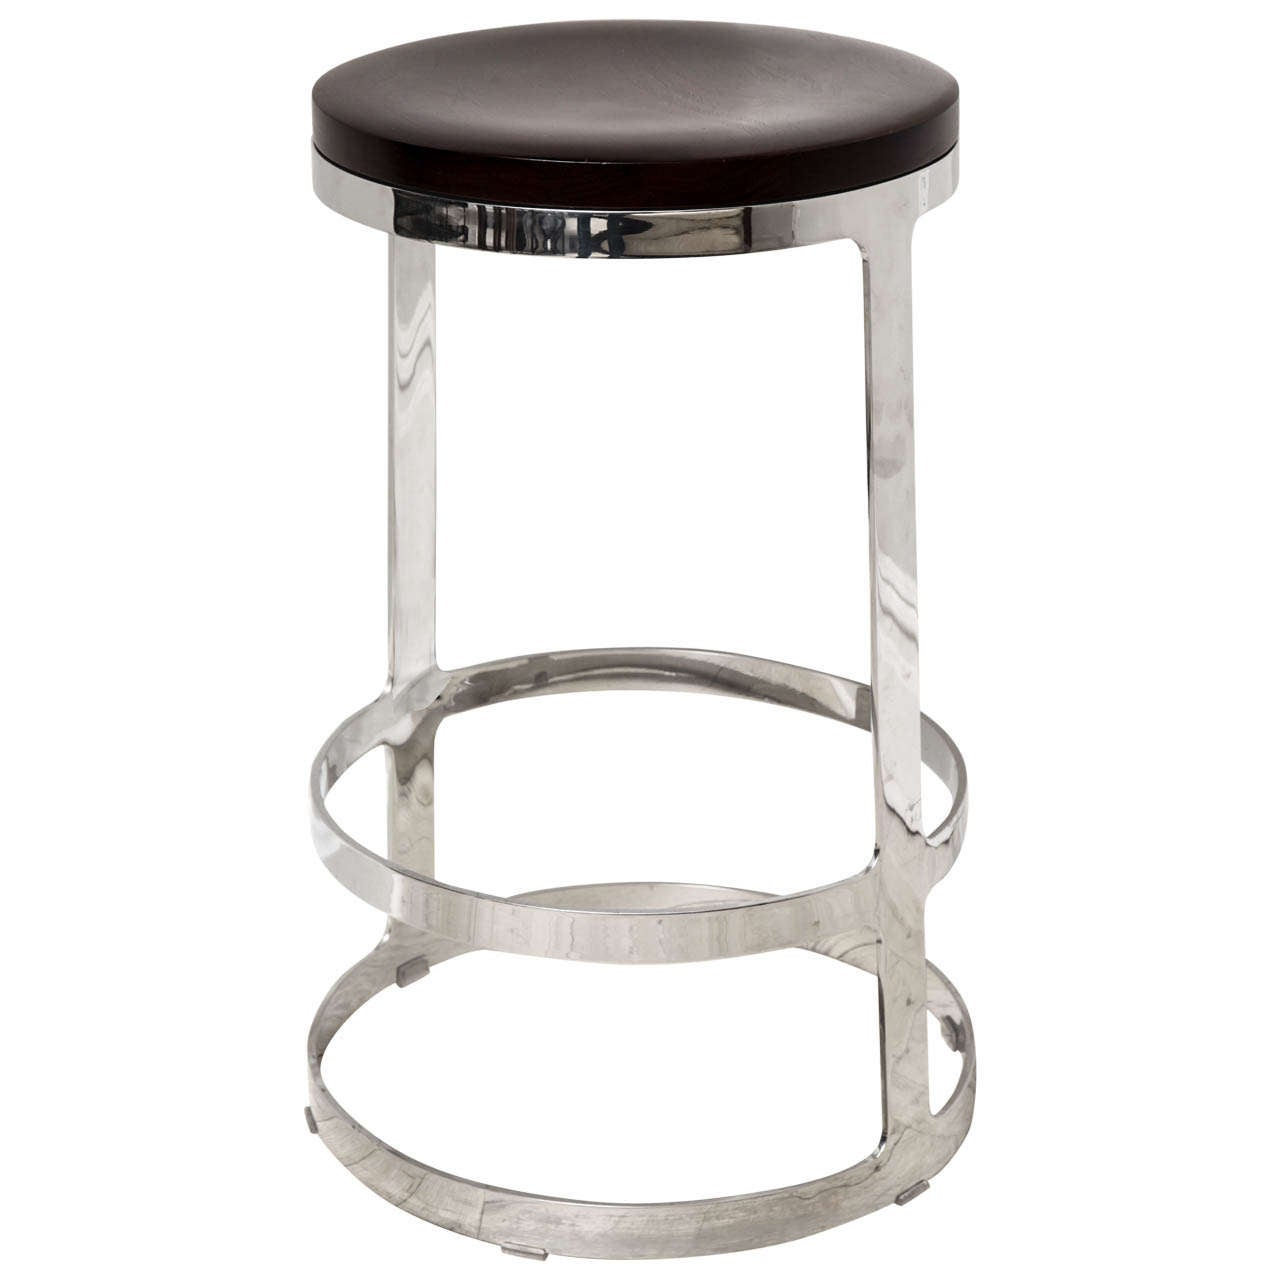 Original Swing Out Seat Made In Usa Bar Or Arm Stool At